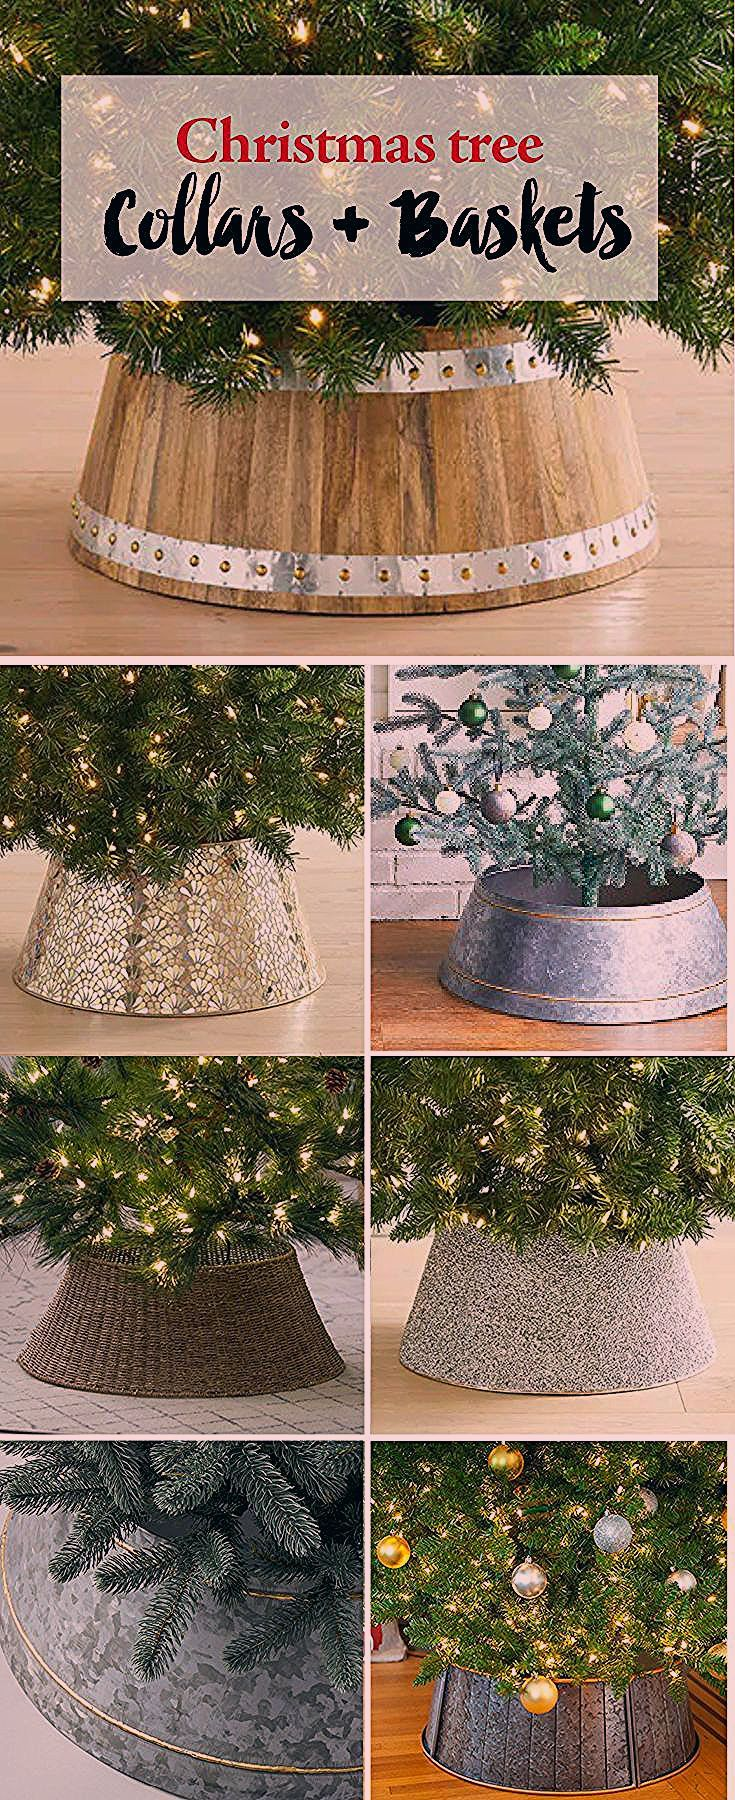 Christmas Tree Collars and Baskets #howtoputribbononachristmastree